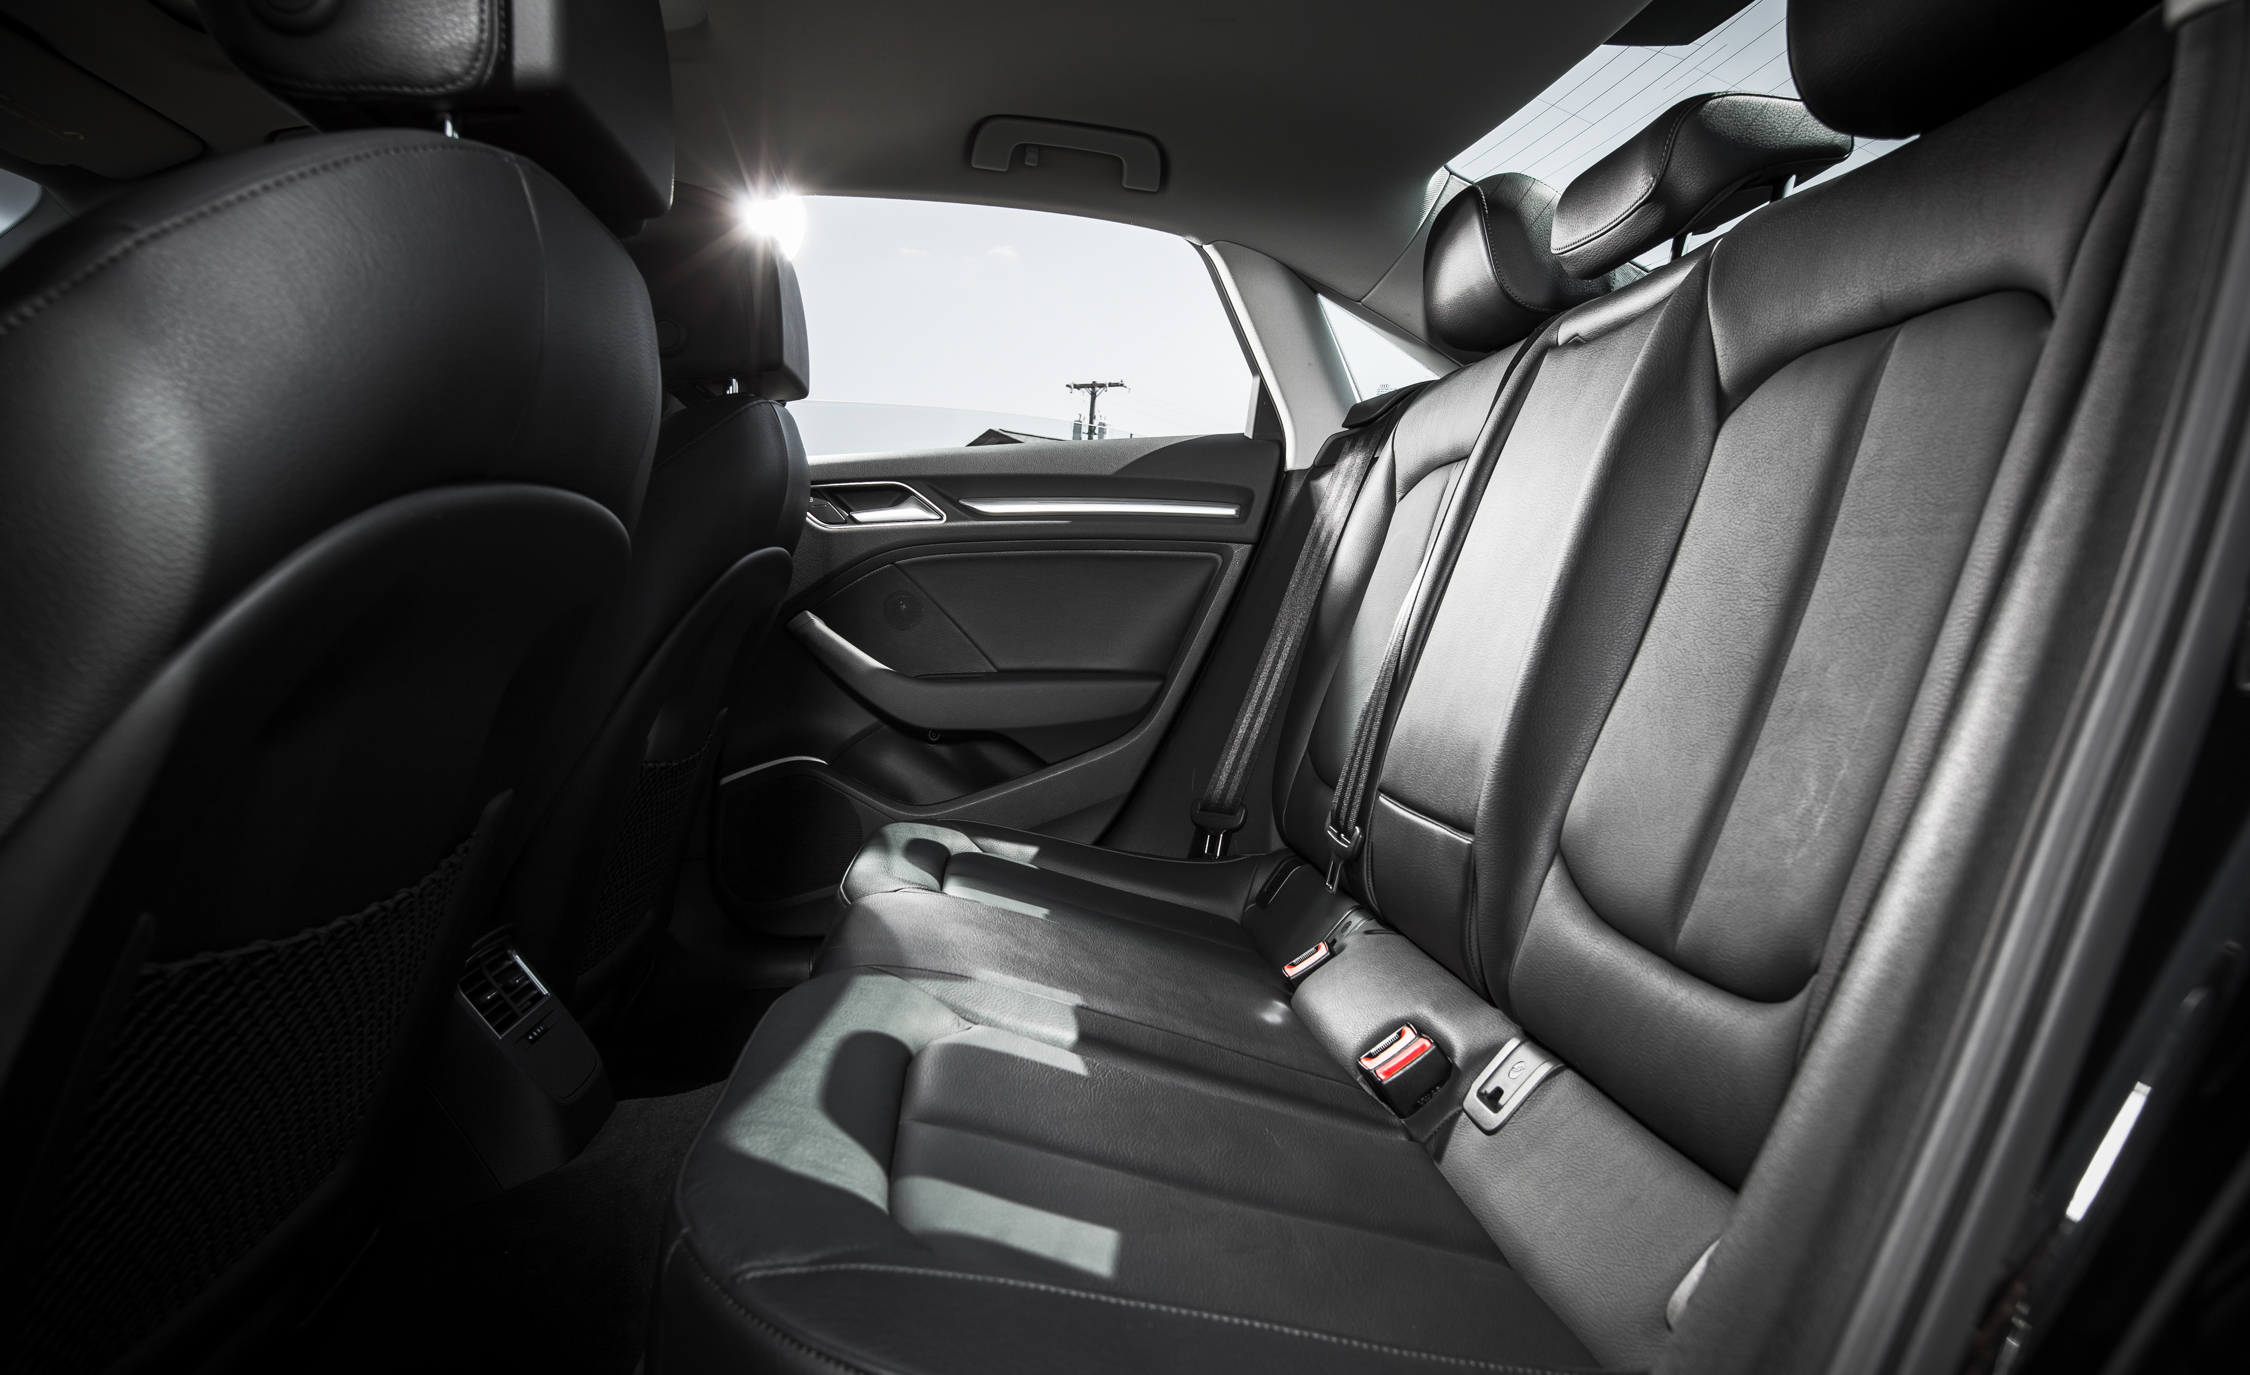 2015 Audi A3 TDI Interior Seats Rear Space (Photo 38 of 50)